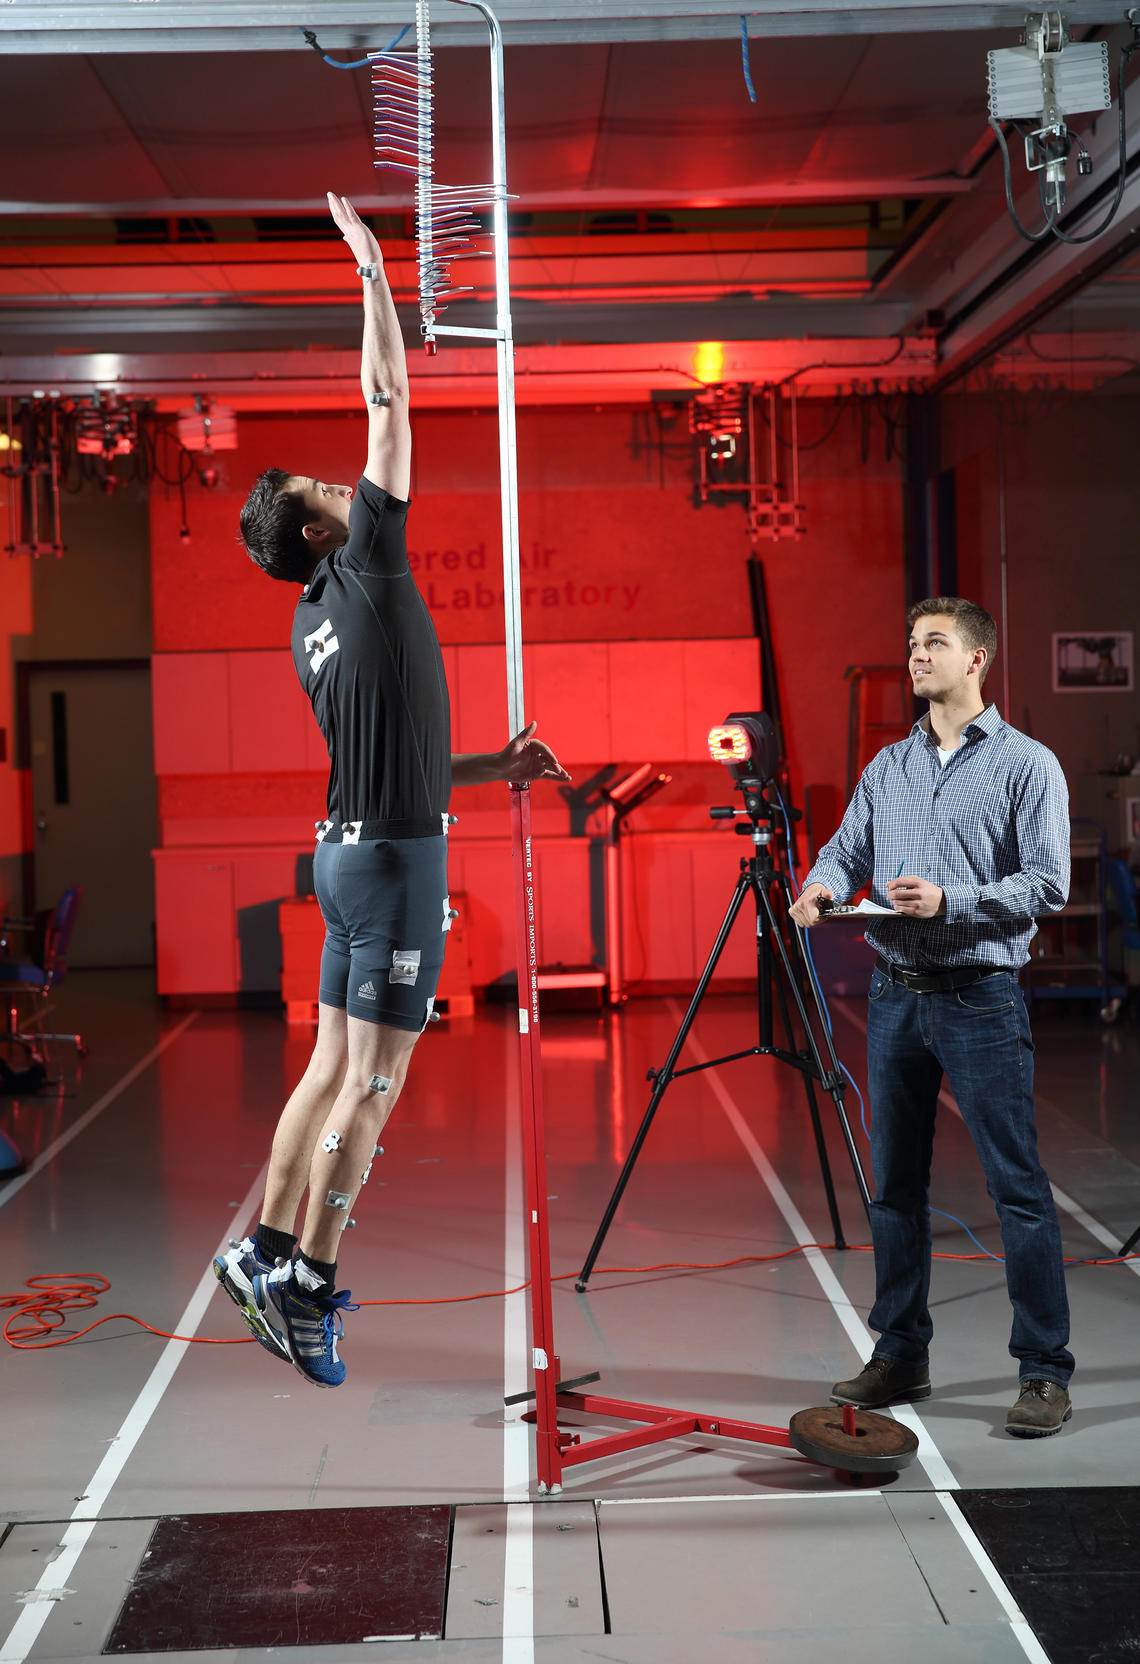 Maurice Mohr's doctoral thesis investigated the long-term consequences of a sport-related knee injury. Here, he tests the subject's jump height while recording his lower body movement via 3D motion capture.